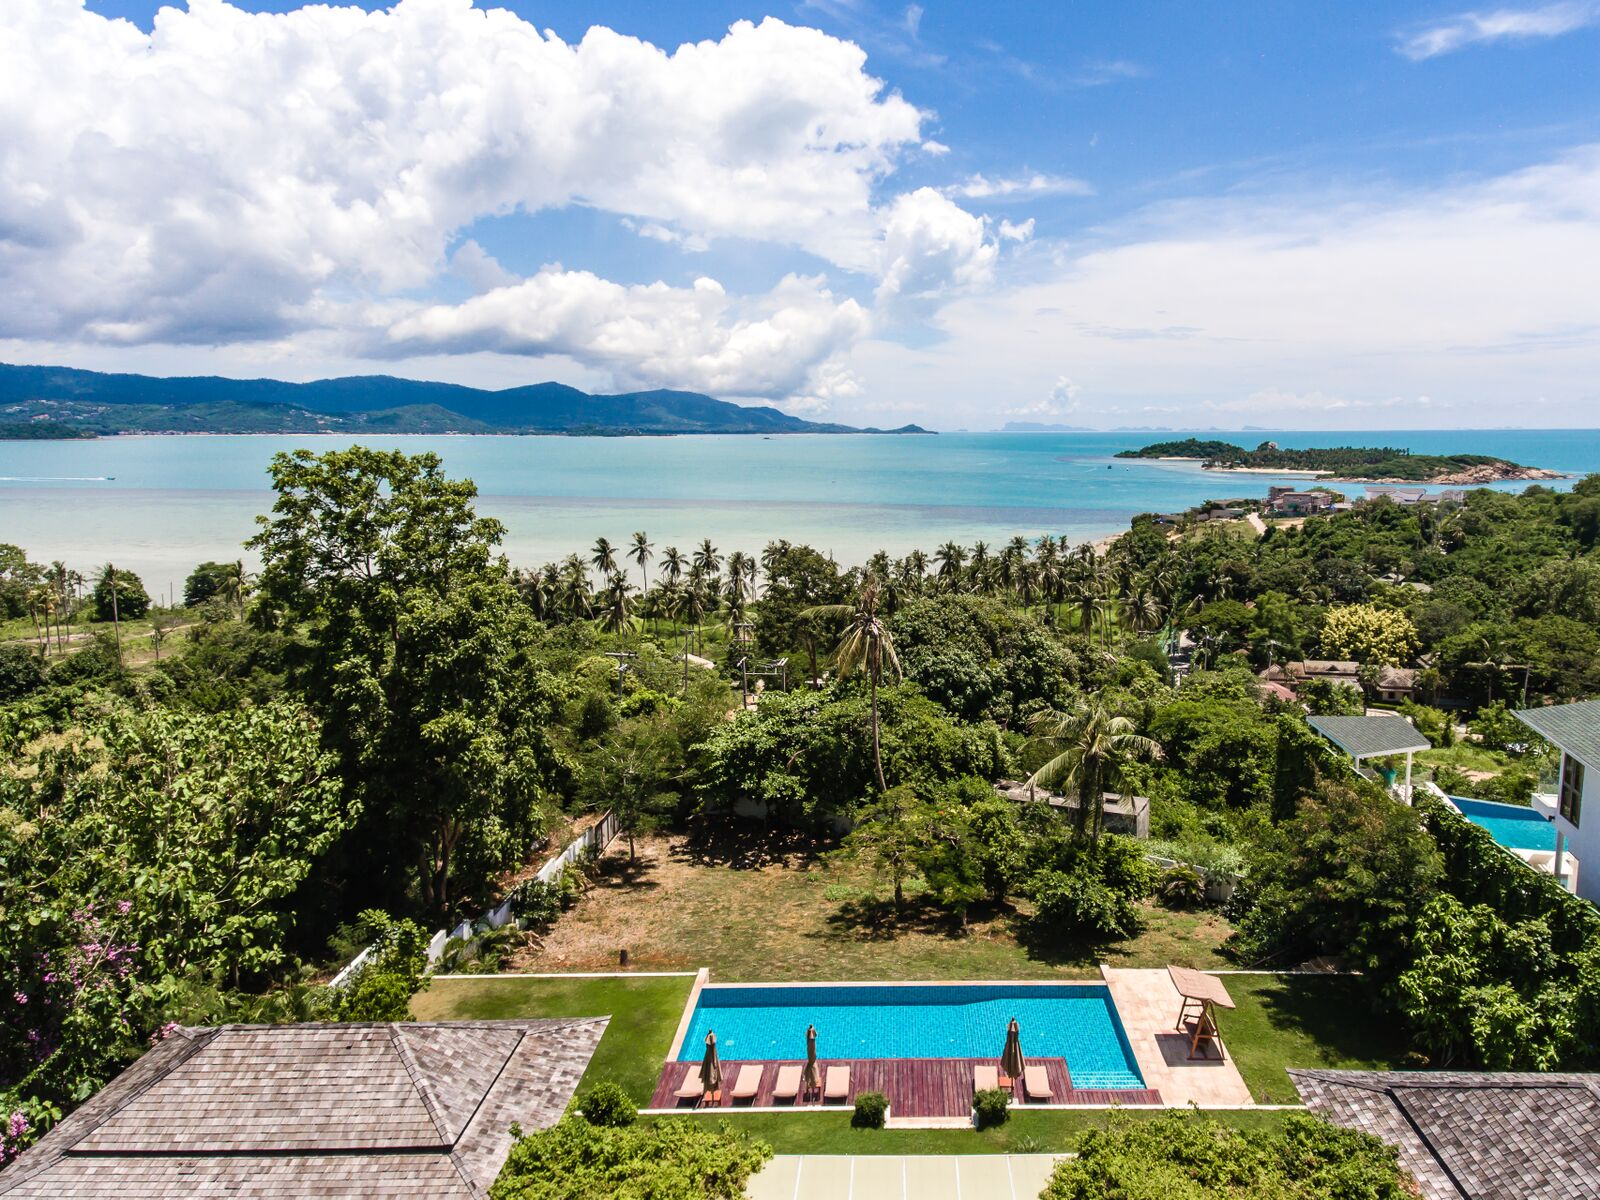 3 Bedroom Sea View Villa with Private Pool at Tongson Bay Koh Samui